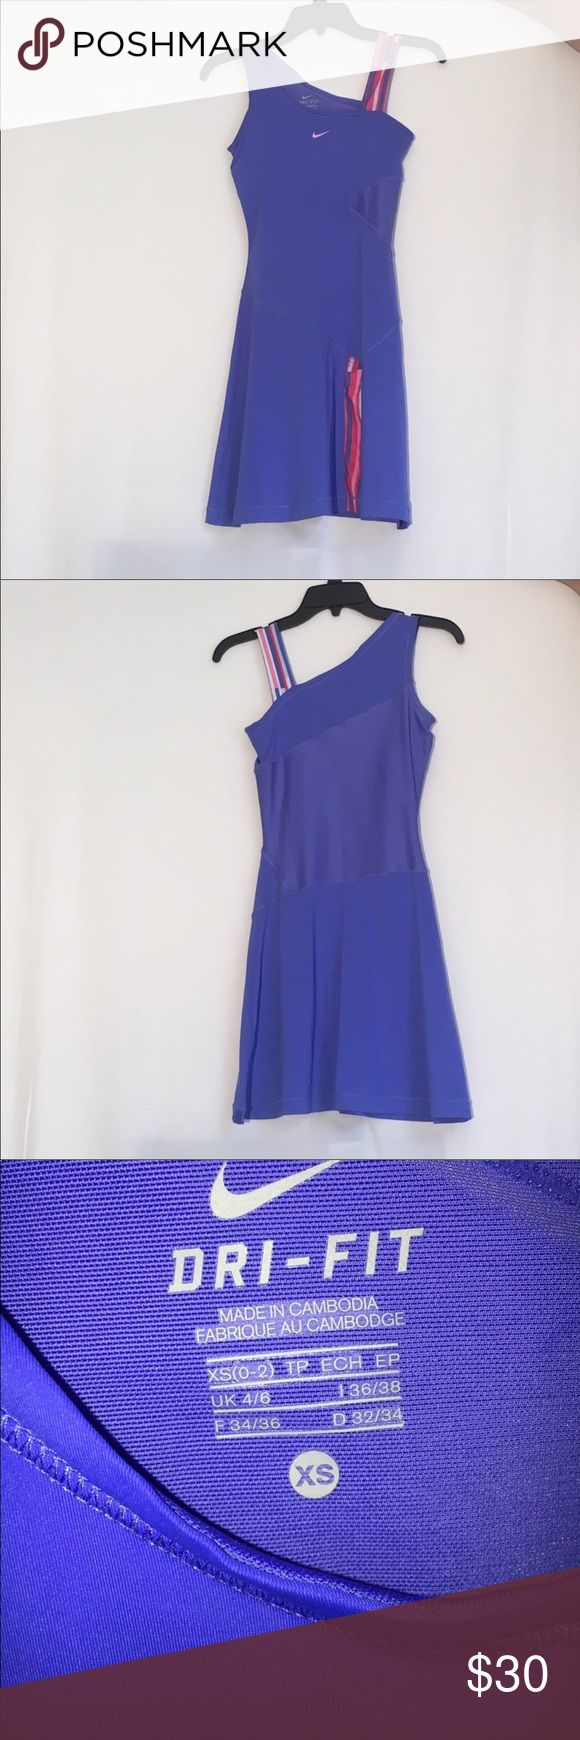 NIKE dri fit tennis golf dress Size xs only worn once in perfect condition! Beautiful blue color with built in support. Gold tennis brunching outfit! Nike Dresses